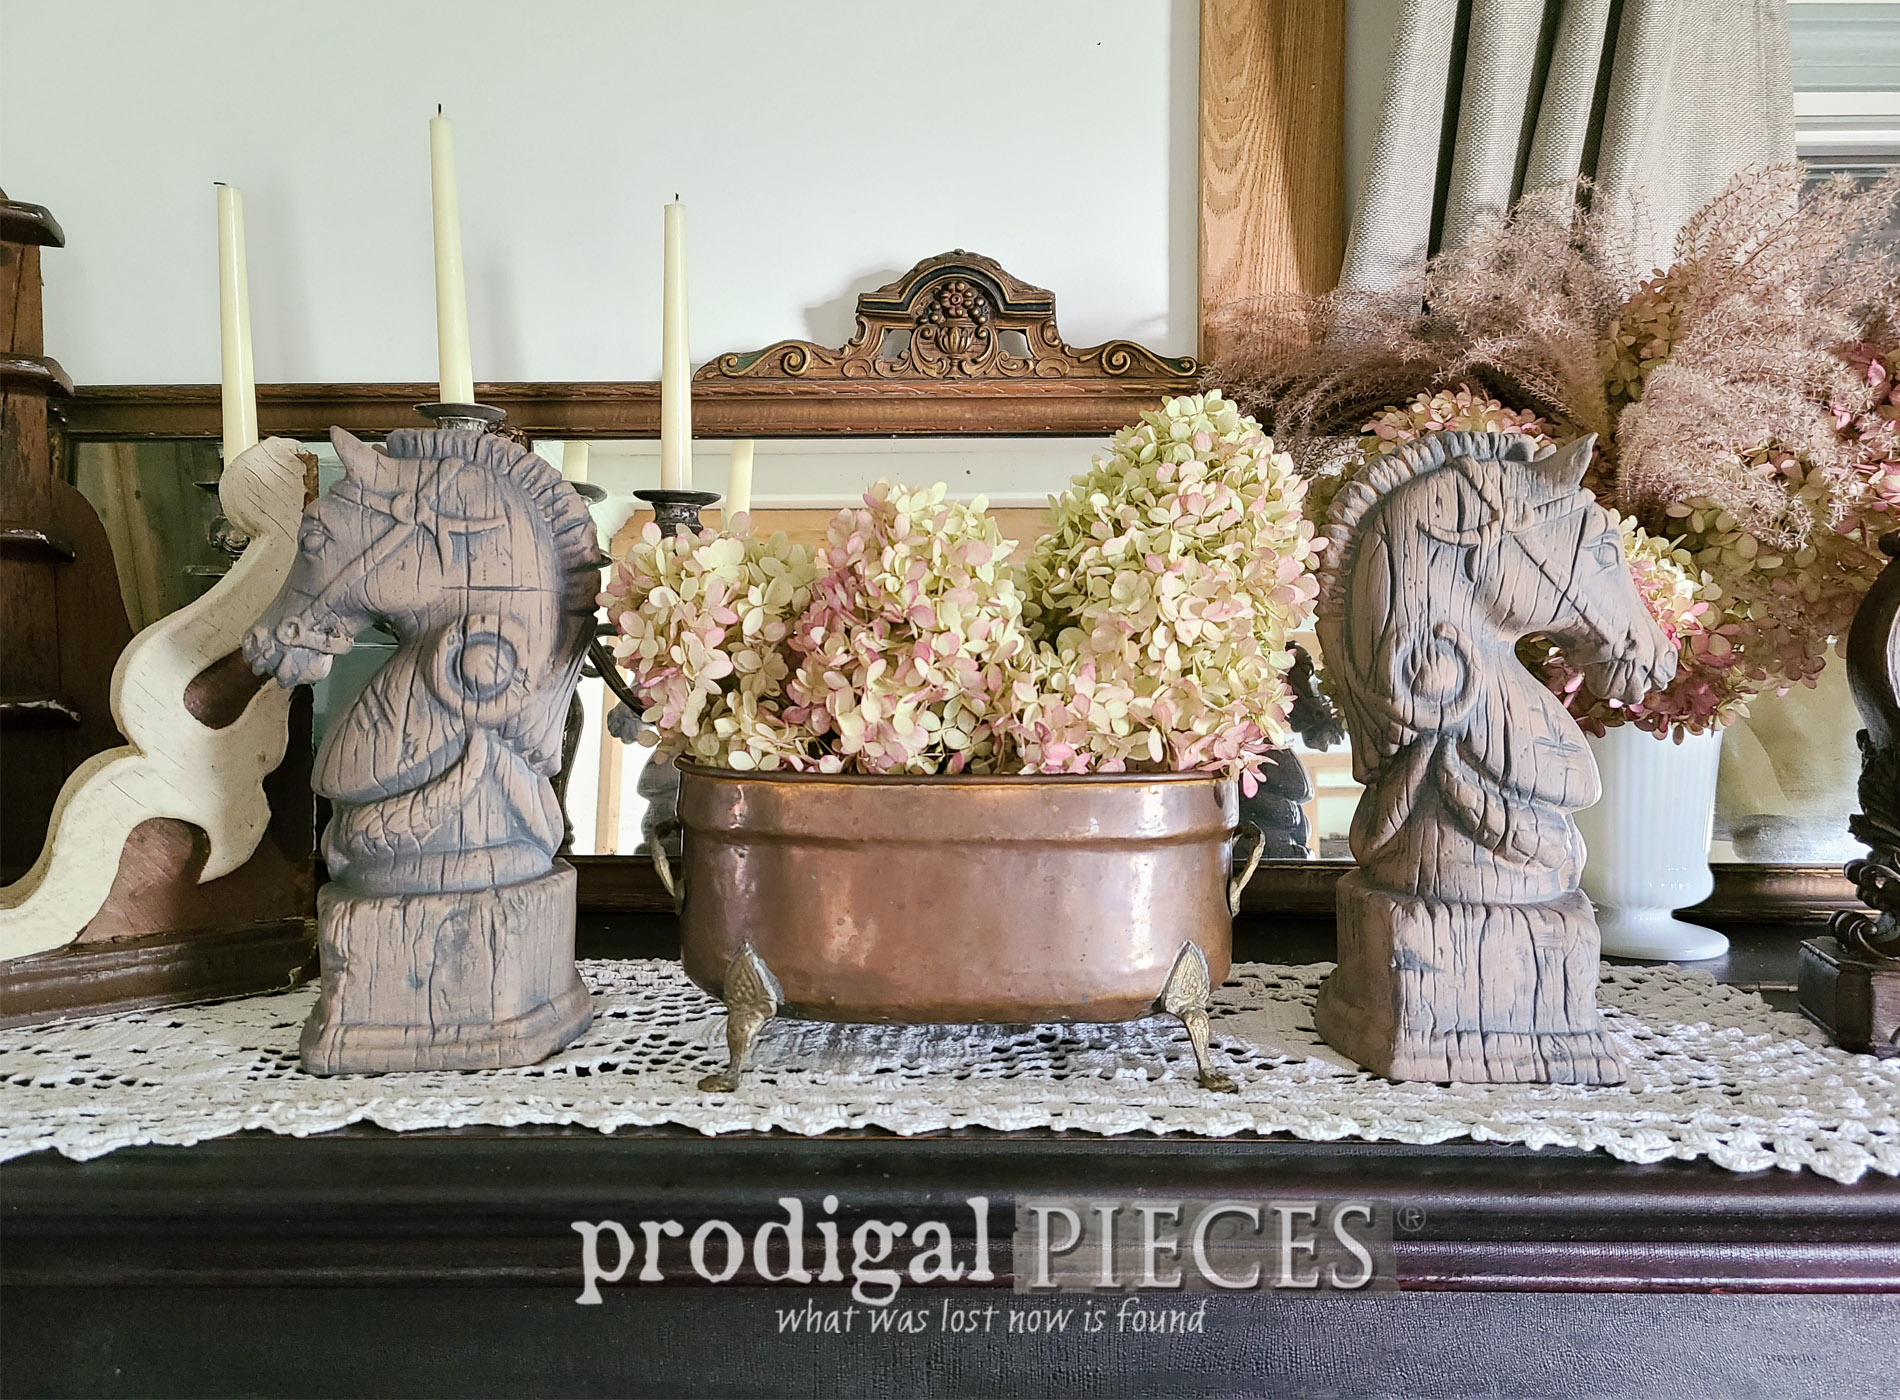 Featured Vintage Horse Head Bookends with Glazing Technique by Larissa of Prodigal Pieces | prodigalpieces.com #prodigalpieces #vintage #home #homedecor #farmhouse